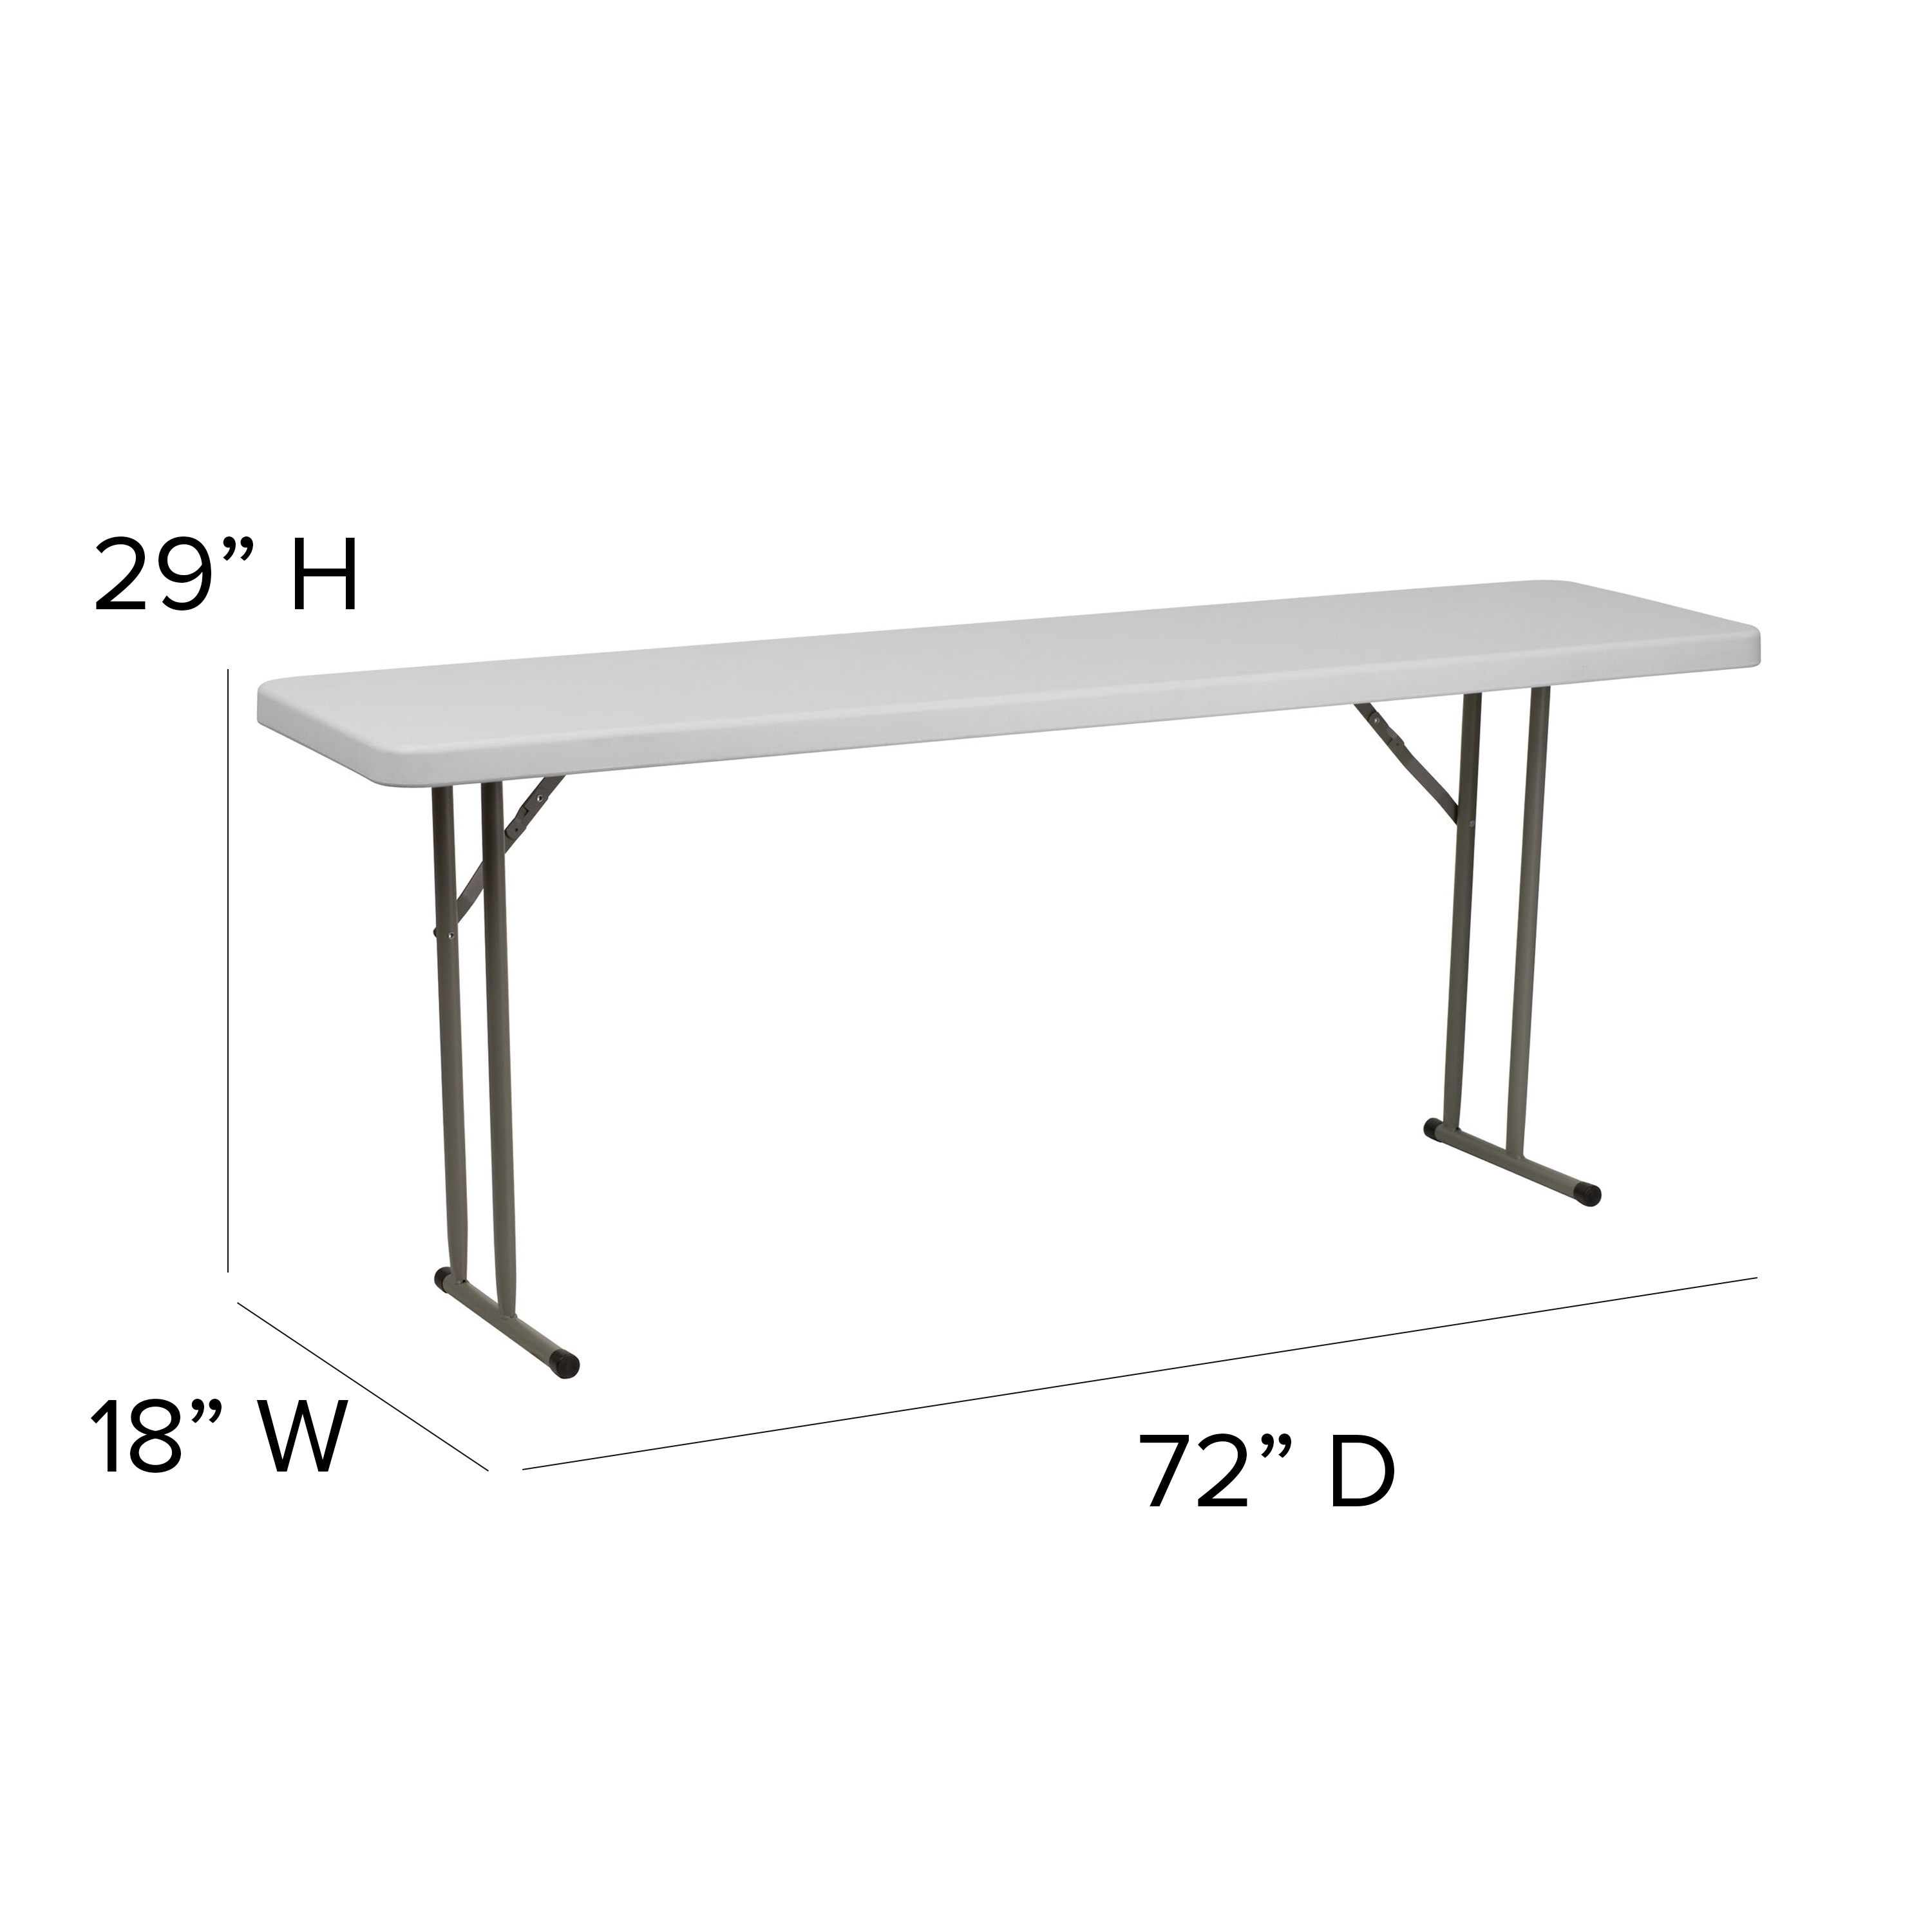 Details about  /Flash Furniture Granite White Plastic Folding Training Table Available in 2 Size